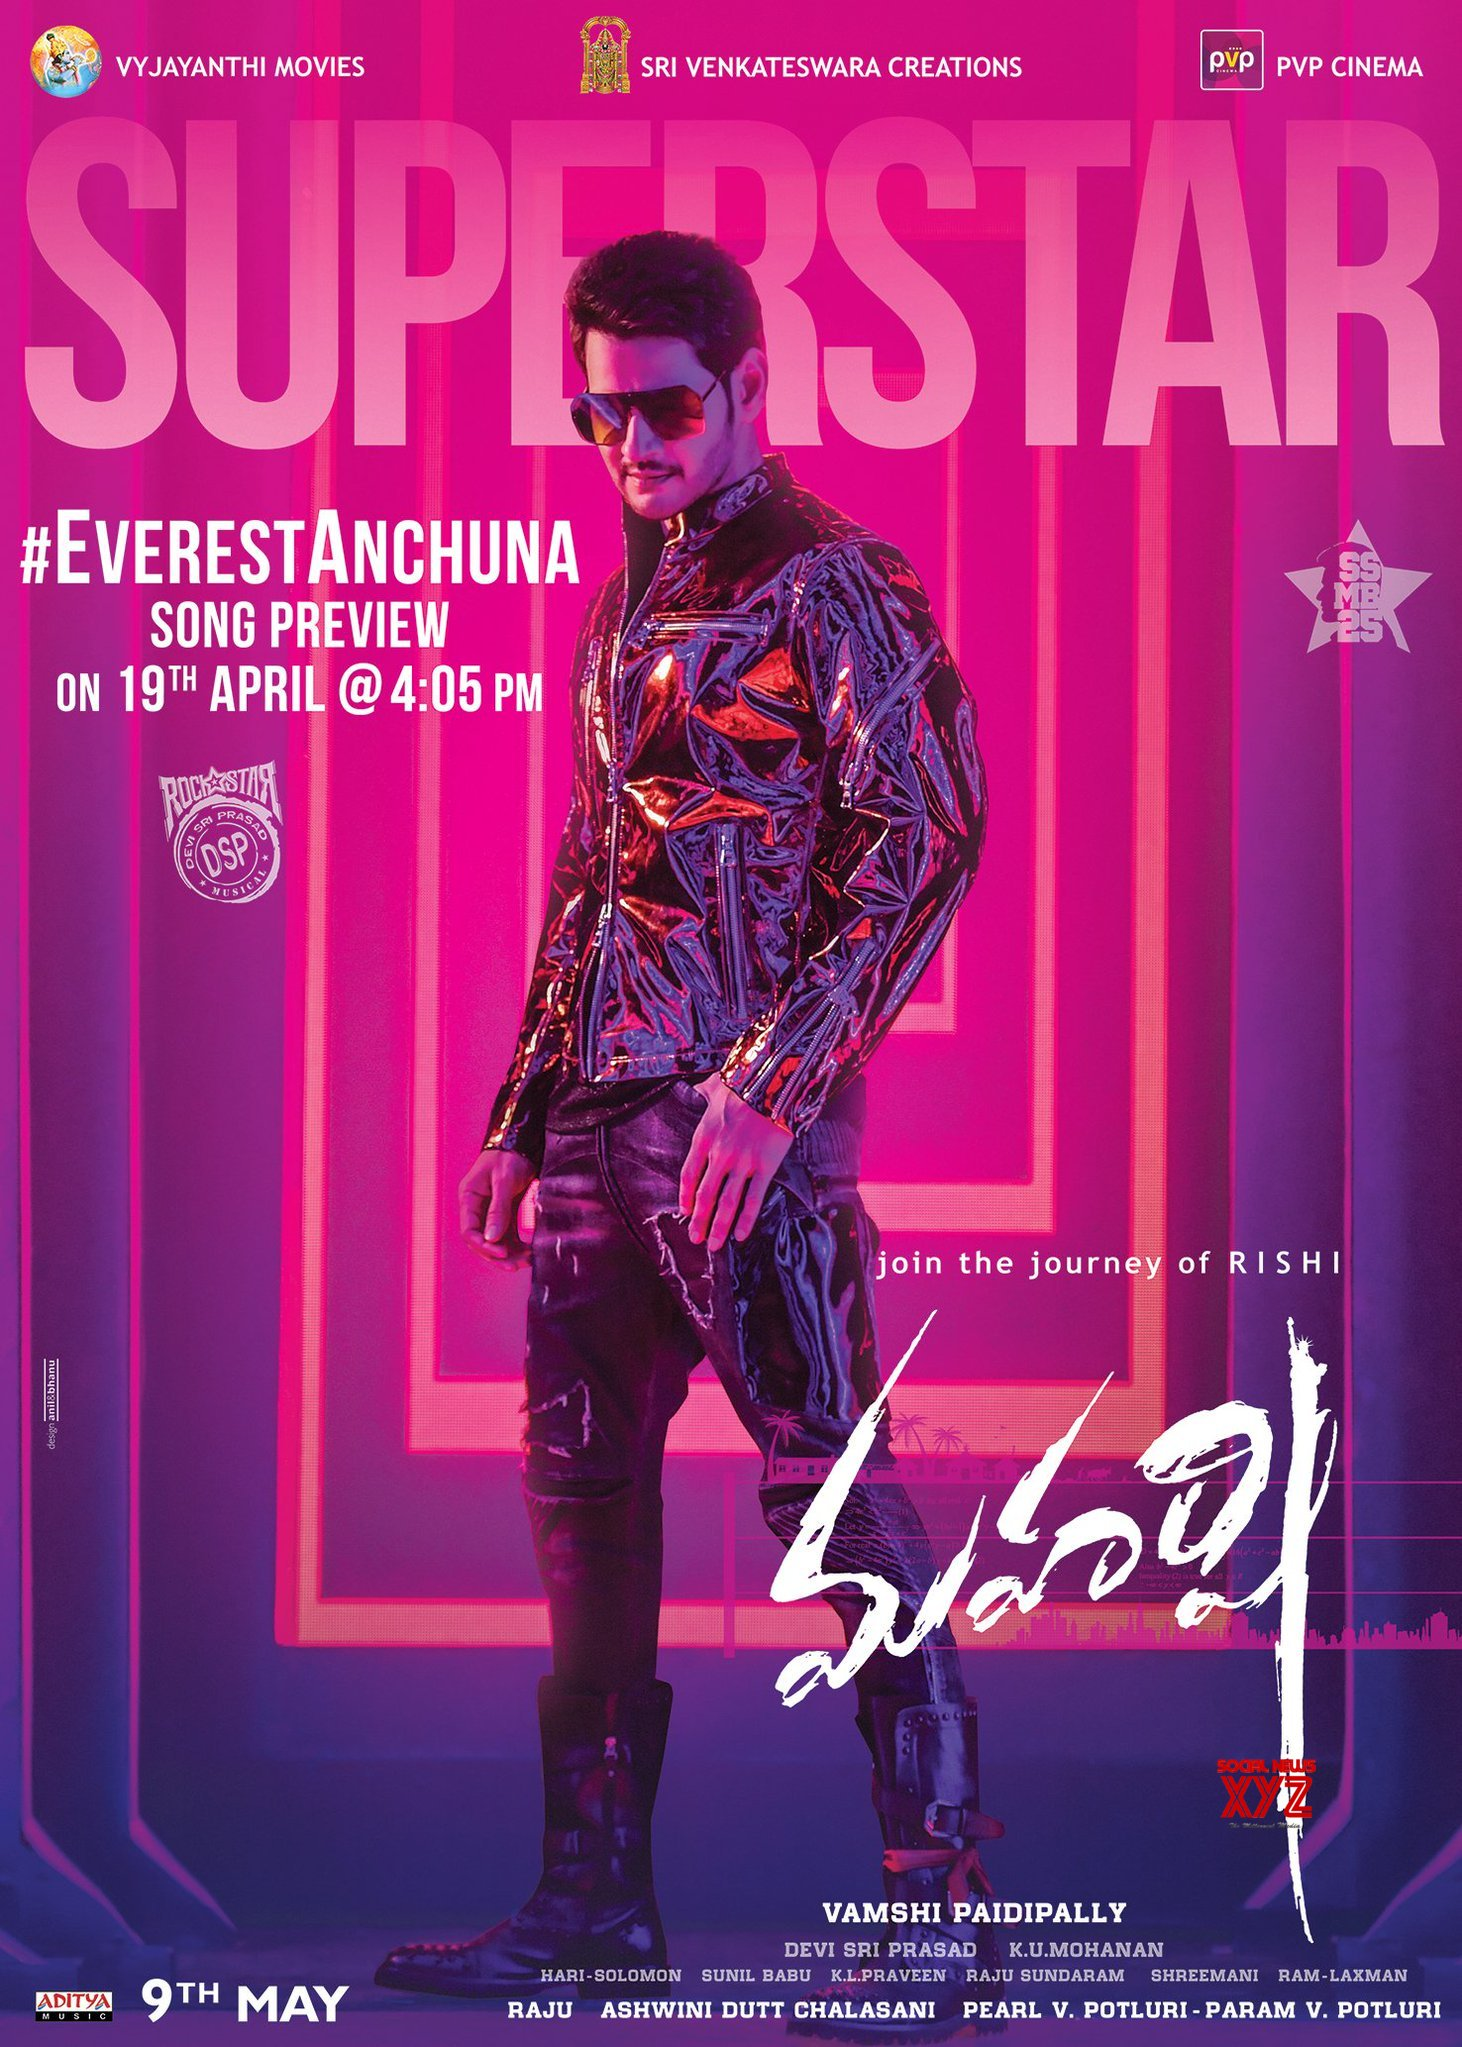 Everest Anchuna Song Video Preview From Maharshi On The 19th Of April At 4:05 PM